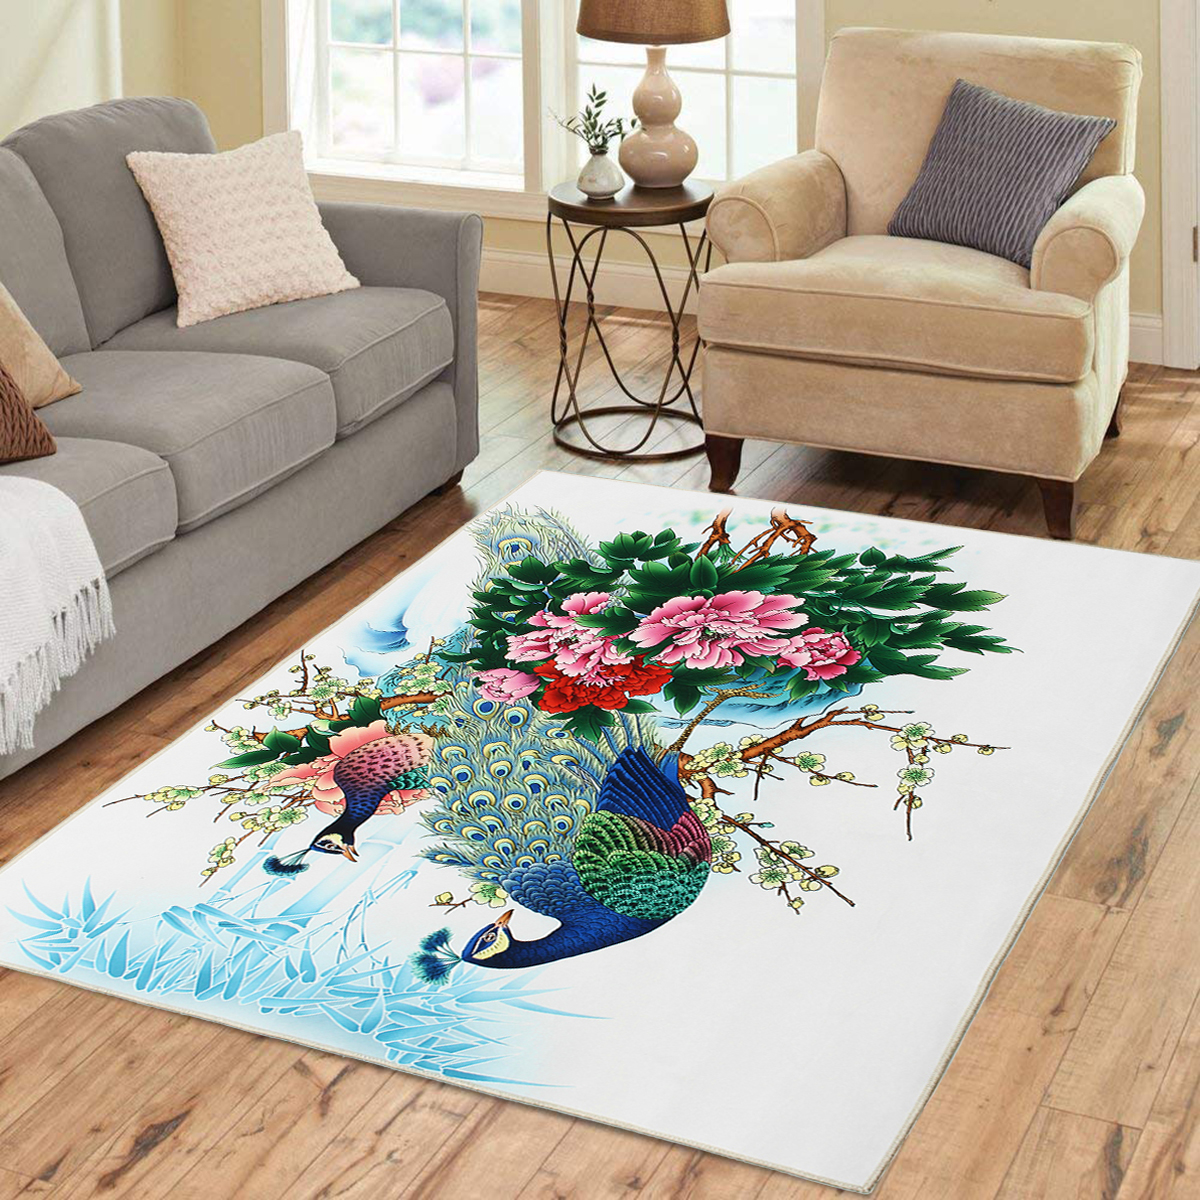 Peacock Flower Area Floor Rug Carpet For Bedroom Living Room Home Mat Decoration